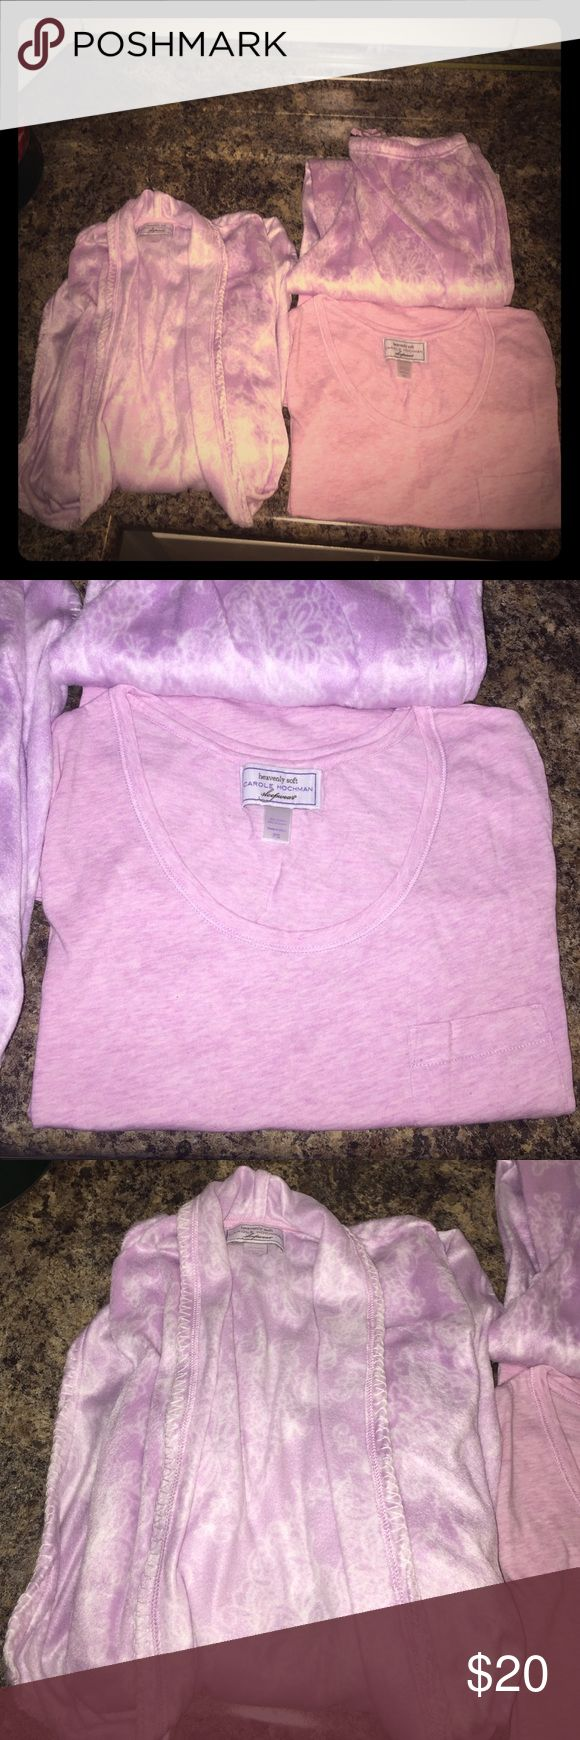 100% polyester women's PJ's, NWOT 100% polyester women's PJ set, NWOT, come with t-shirt, long pants and robe, pink, so soft Carole Hochman Intimates & Sleepwear Pajamas